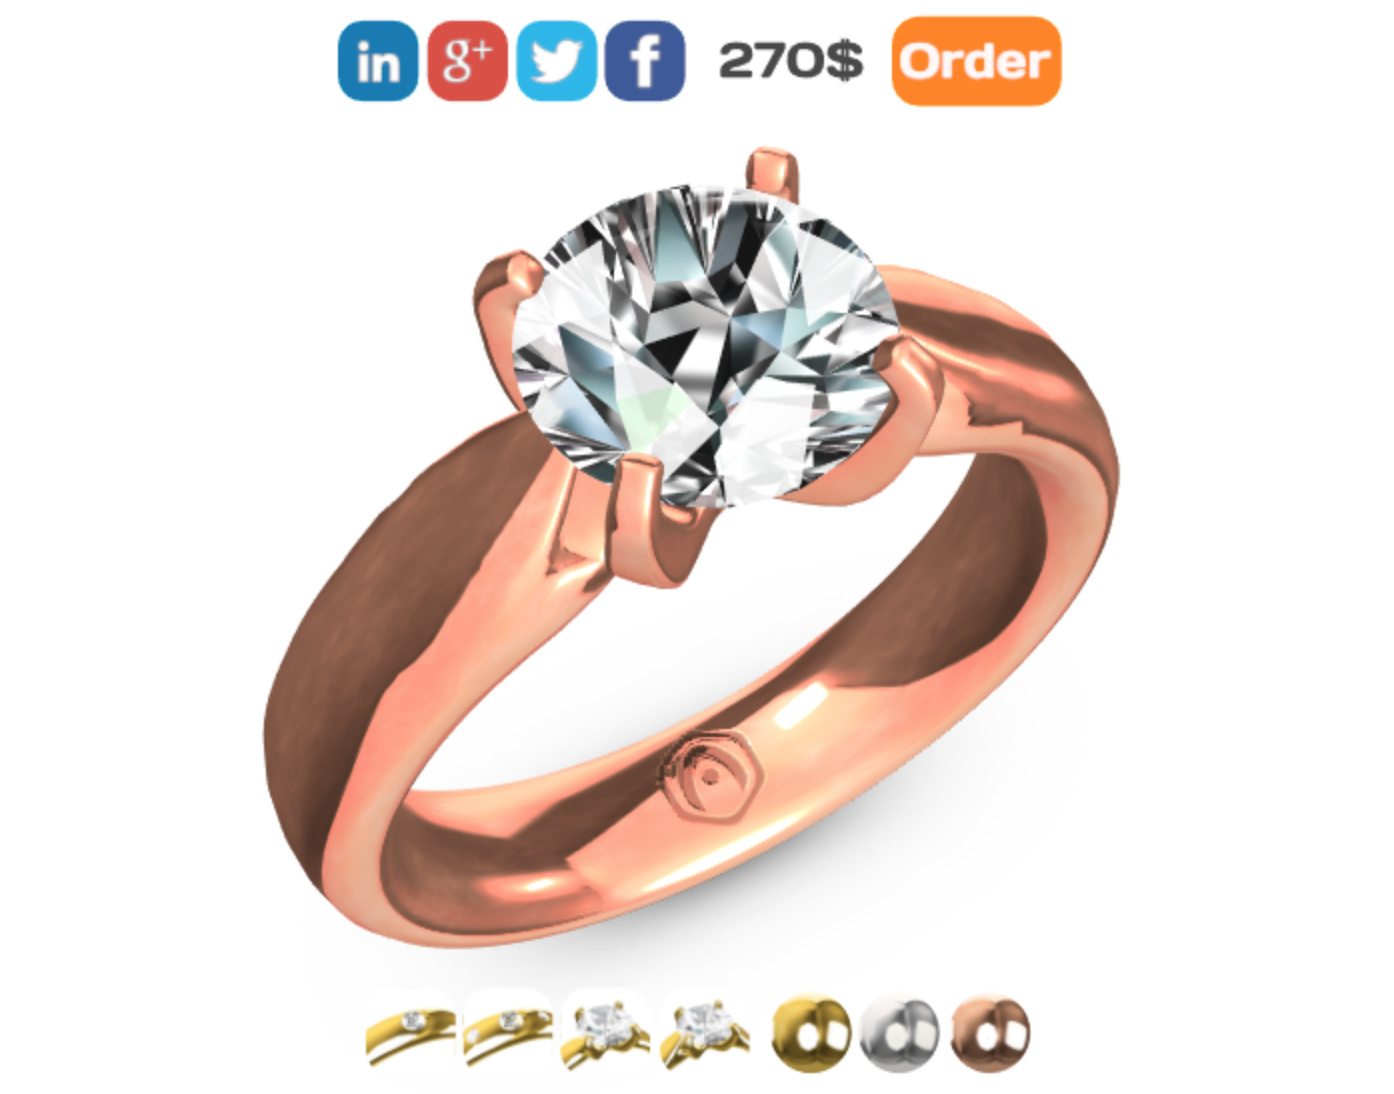 ring_with_ecommerce